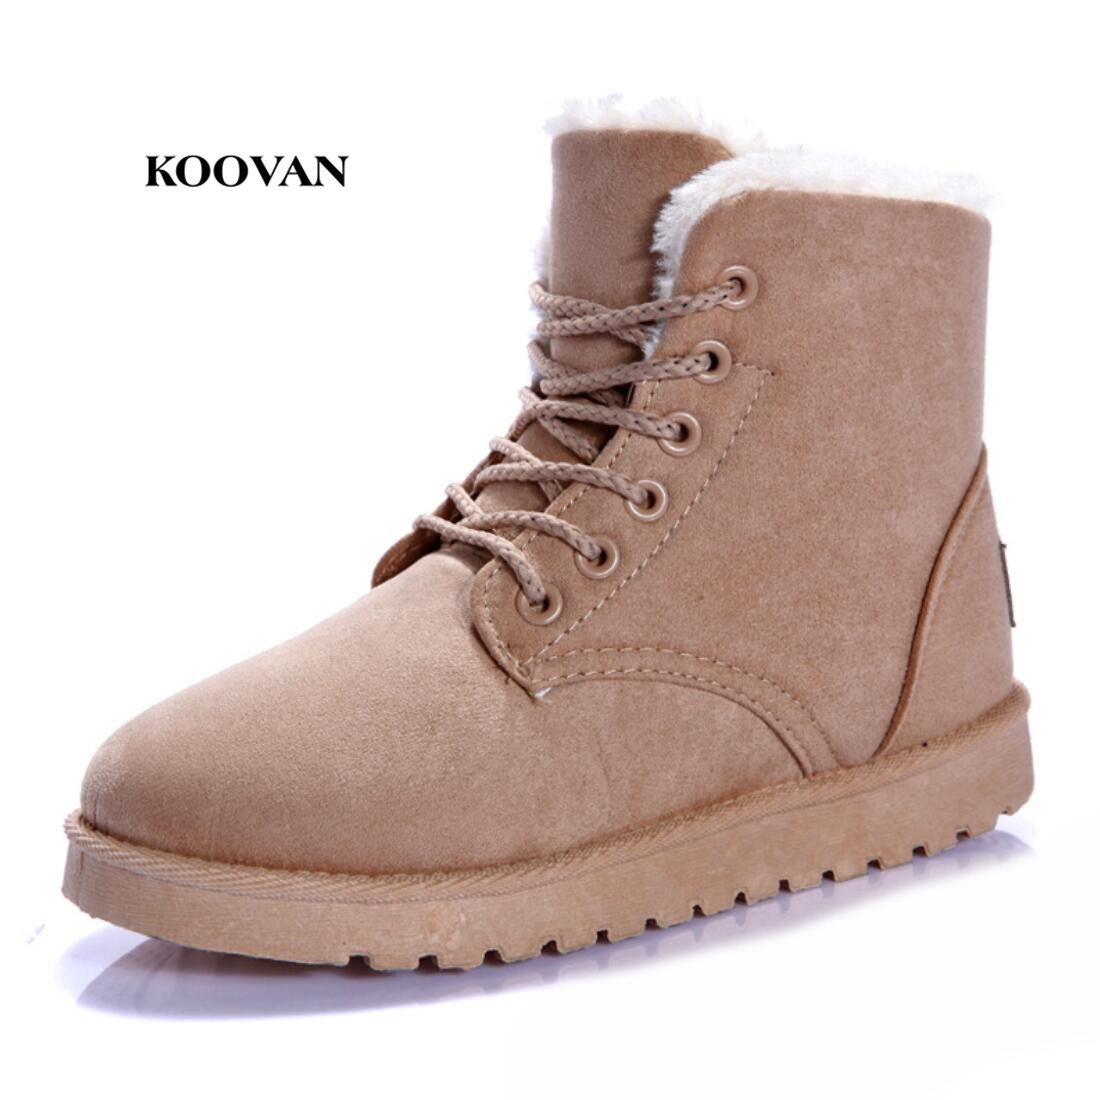 Koovan Women Boots 2017 Winter Fashion Students Snow Boots Girls Short Boots Warm Ankle Shoes Martin Shoes Warm Cotton 2017 thickened graffiti zippers women short snow boots female cotton winter shoes fashion design warm flock page 2